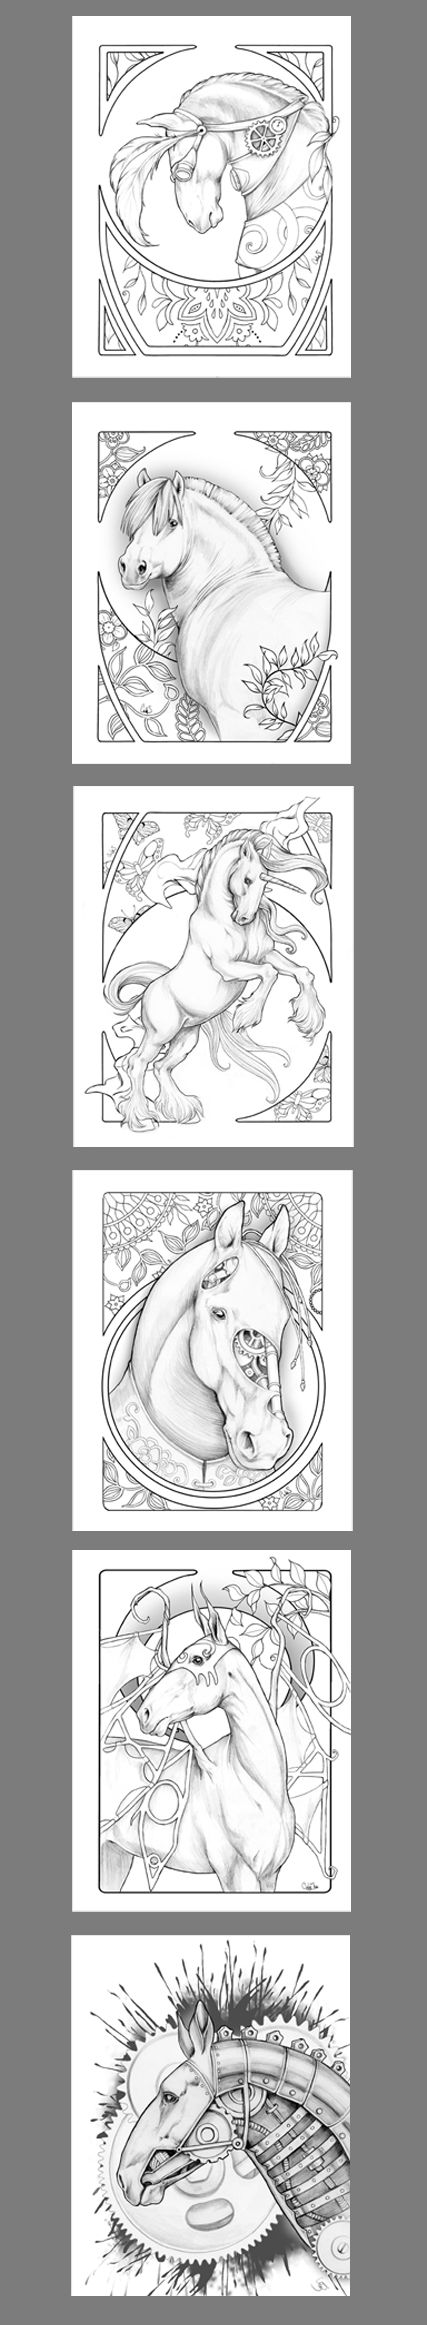 Ml Mlp Human Coloring Pages - This is an amazing new coloring book by cindy elsharouni perfect book for horse lovers